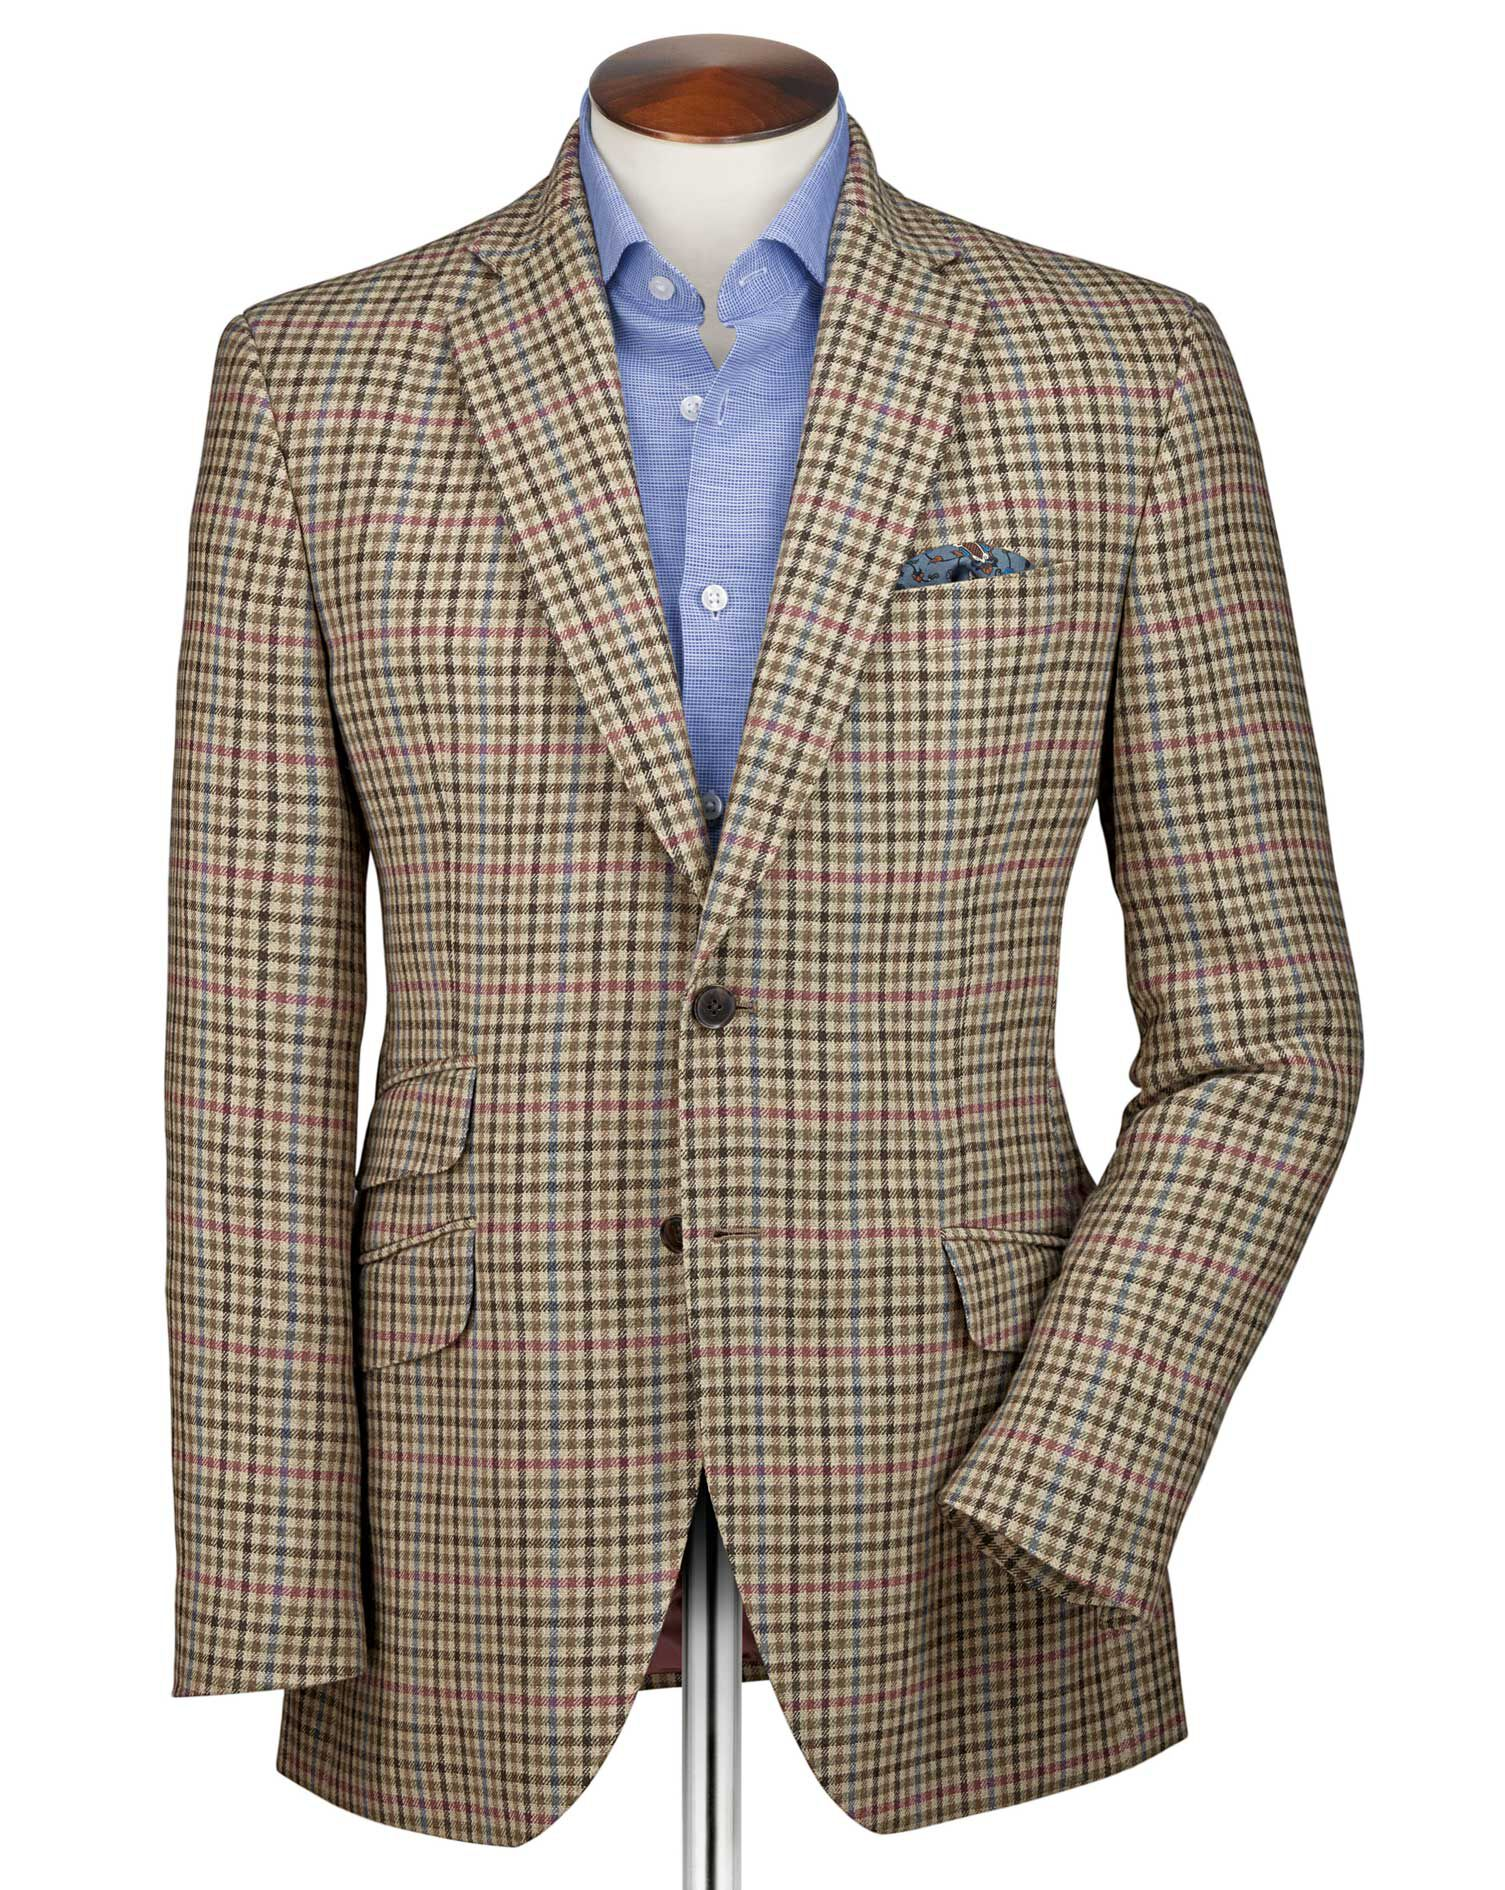 Slim Fit Beige Checkered Luxury Border Tweed Wool Jacket Size 42 by Charles Tyrwhitt